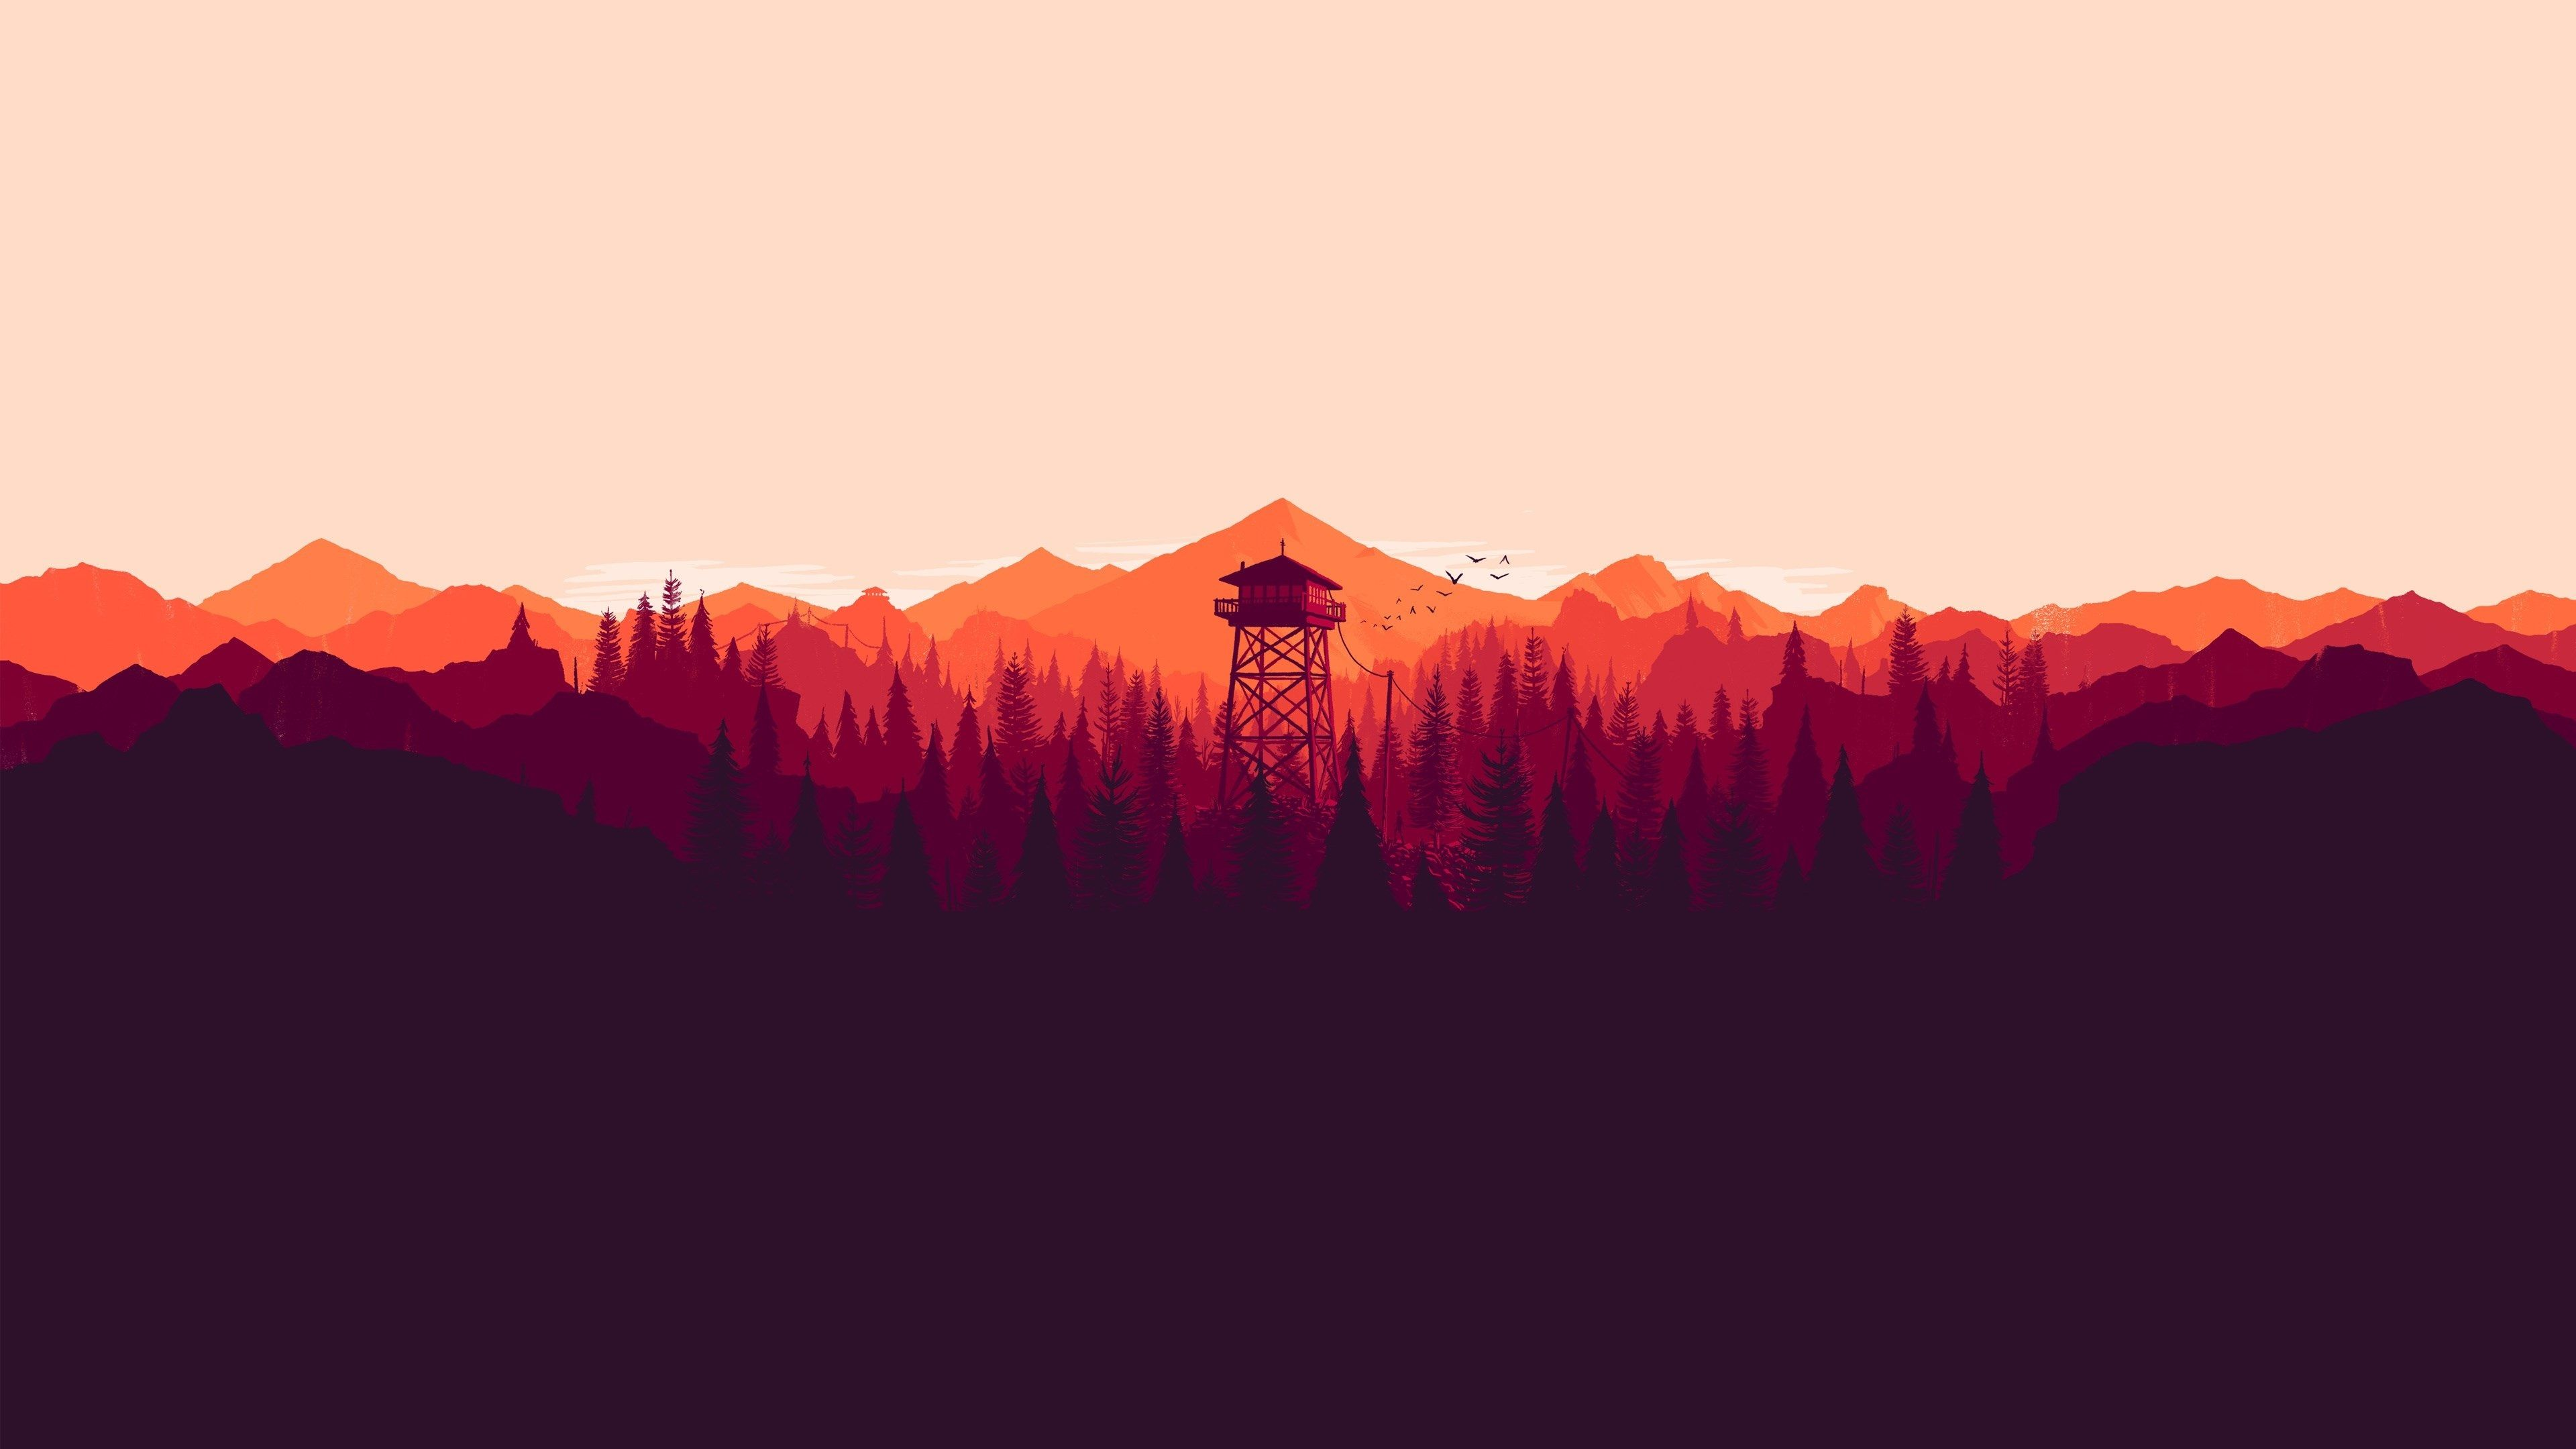 3840x2160 Firewatch 4k Free Download Beautiful Wallpaper For Desktop Firewatch Mountain Illustration Background Images Wallpapers